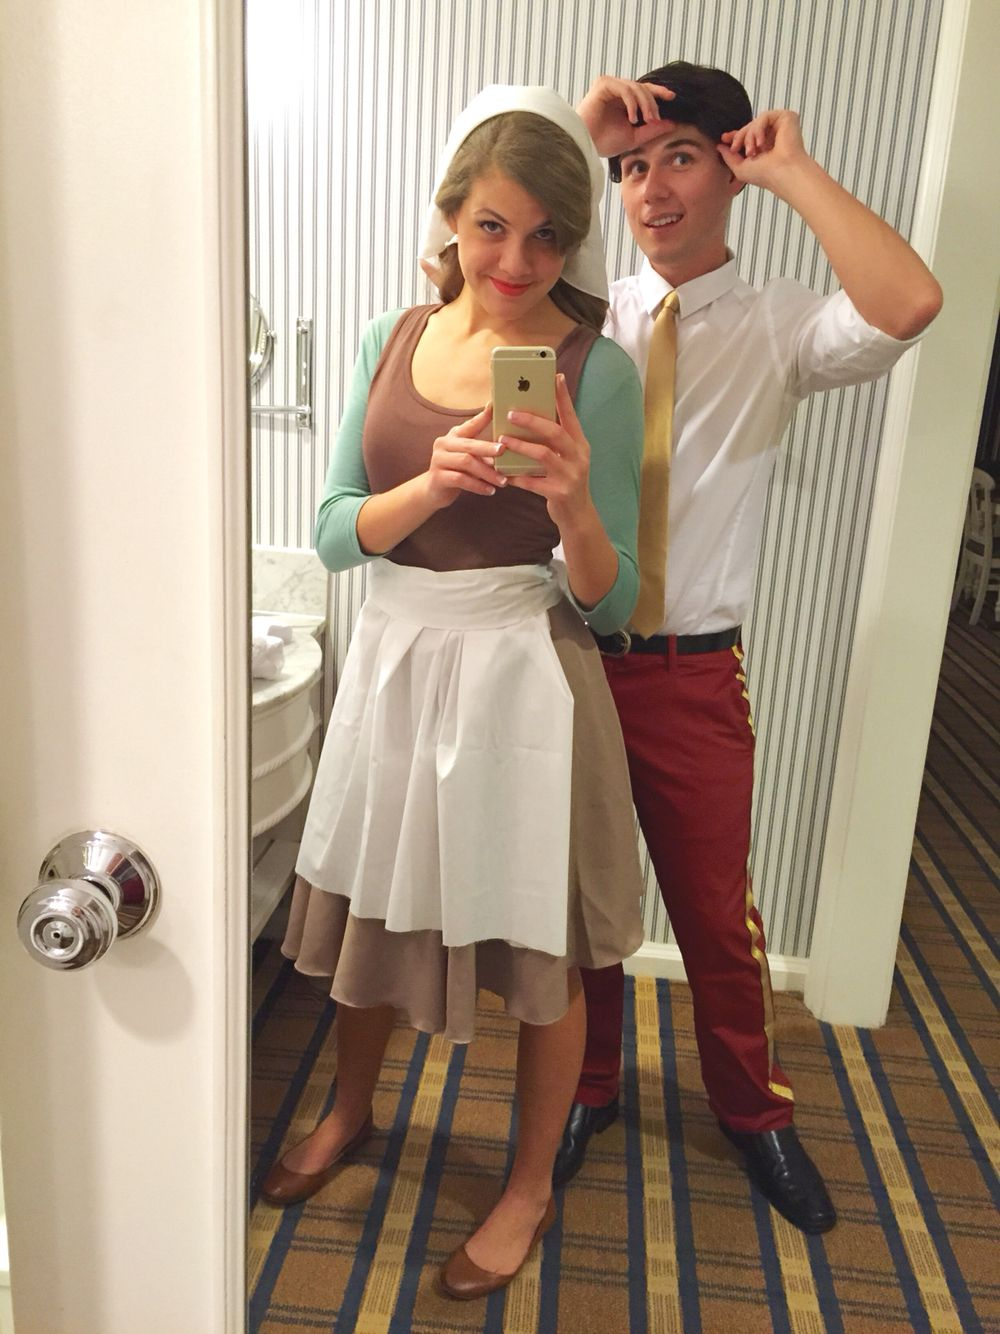 Easy Diy Cinderella Prince Charming Couple Costume All